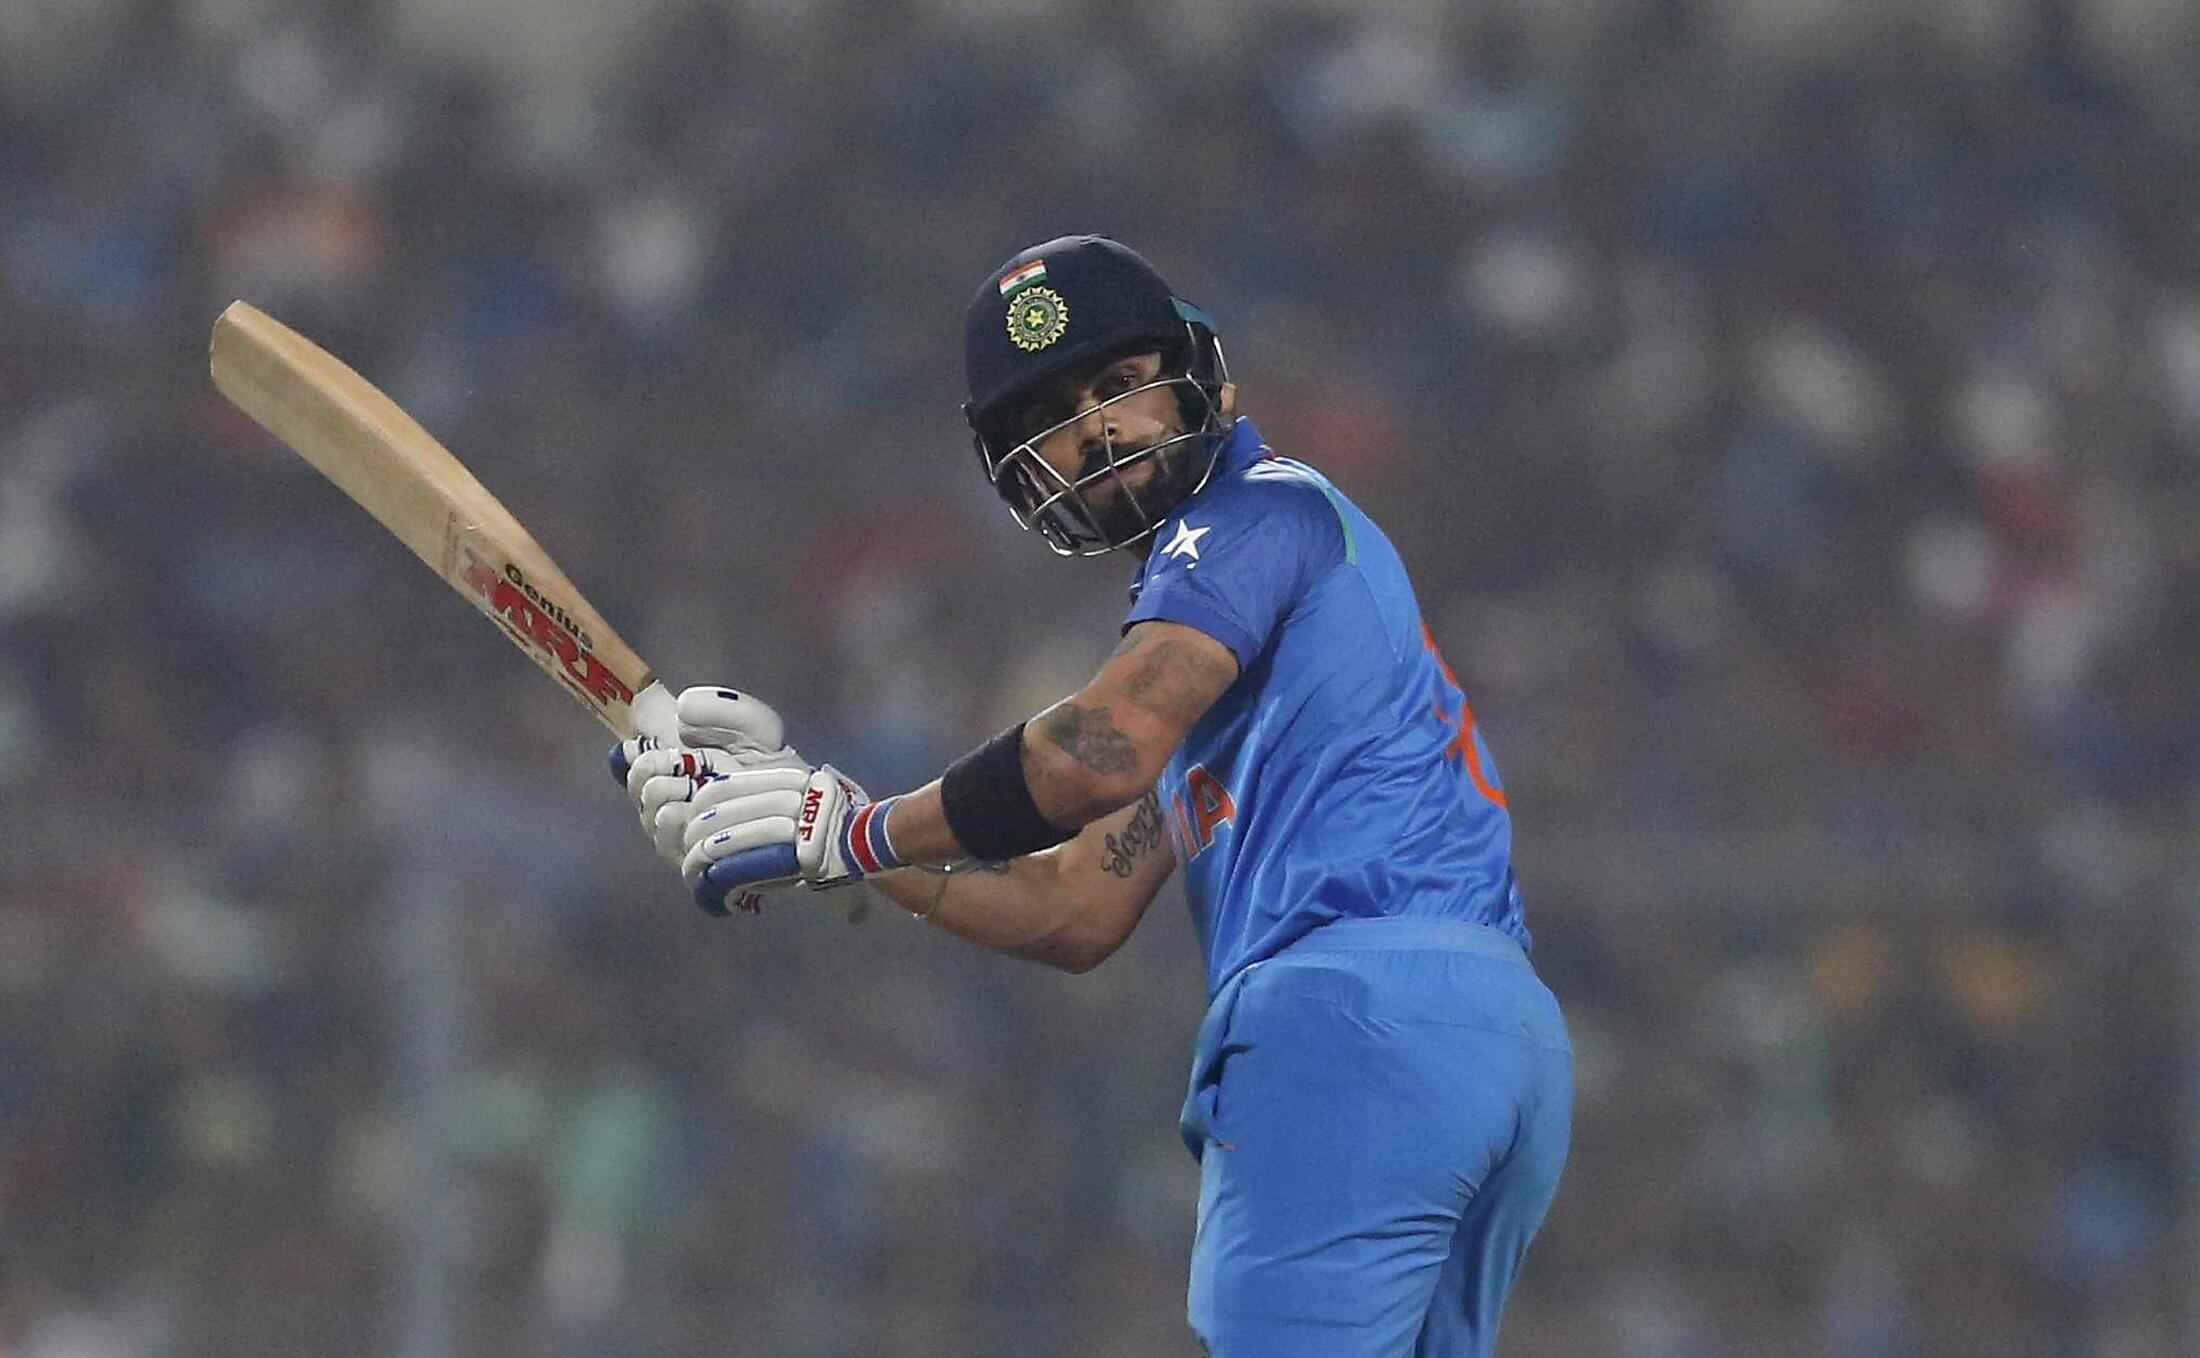 India's captain Virat Kohli (seen in this file picture) scored a masterly double hundred against Bangladesh.